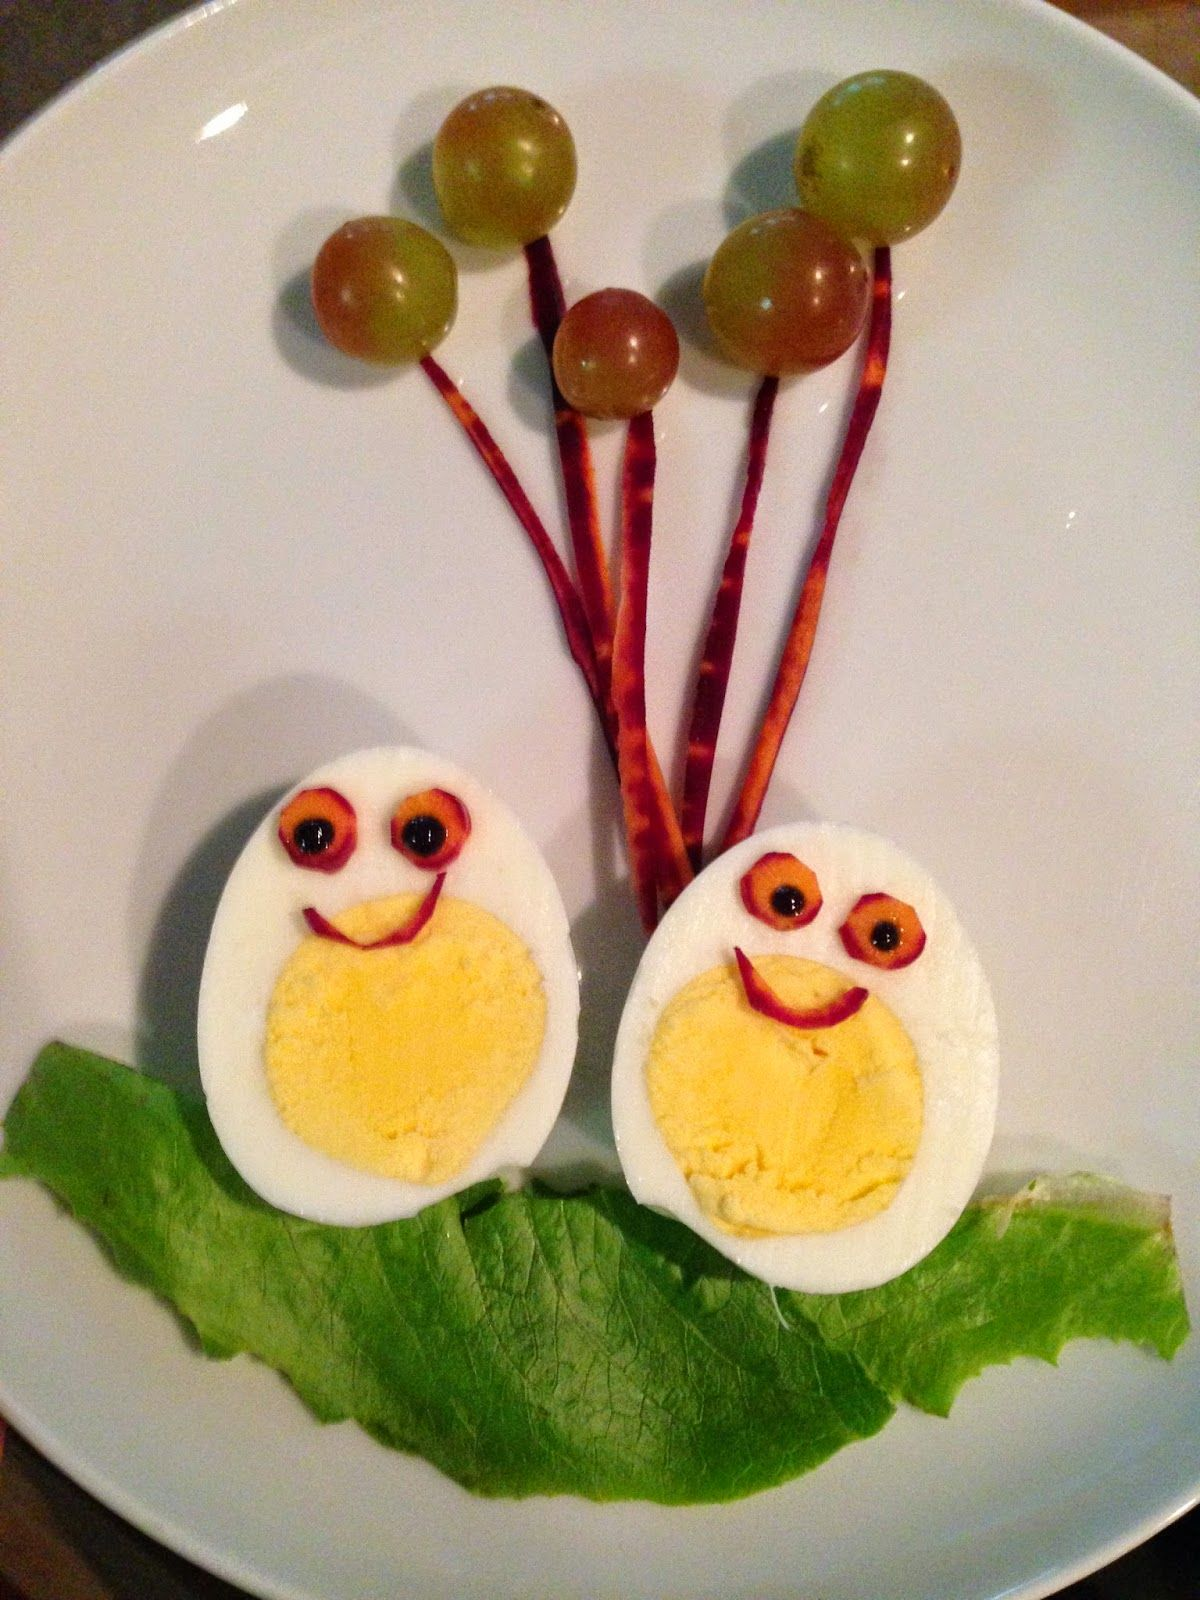 Love birds lovers hardboiled egg eyes purpleorange carrot with love birds lovers hardboiled egg eyes purpleorange carrot with black gel forumfinder Image collections